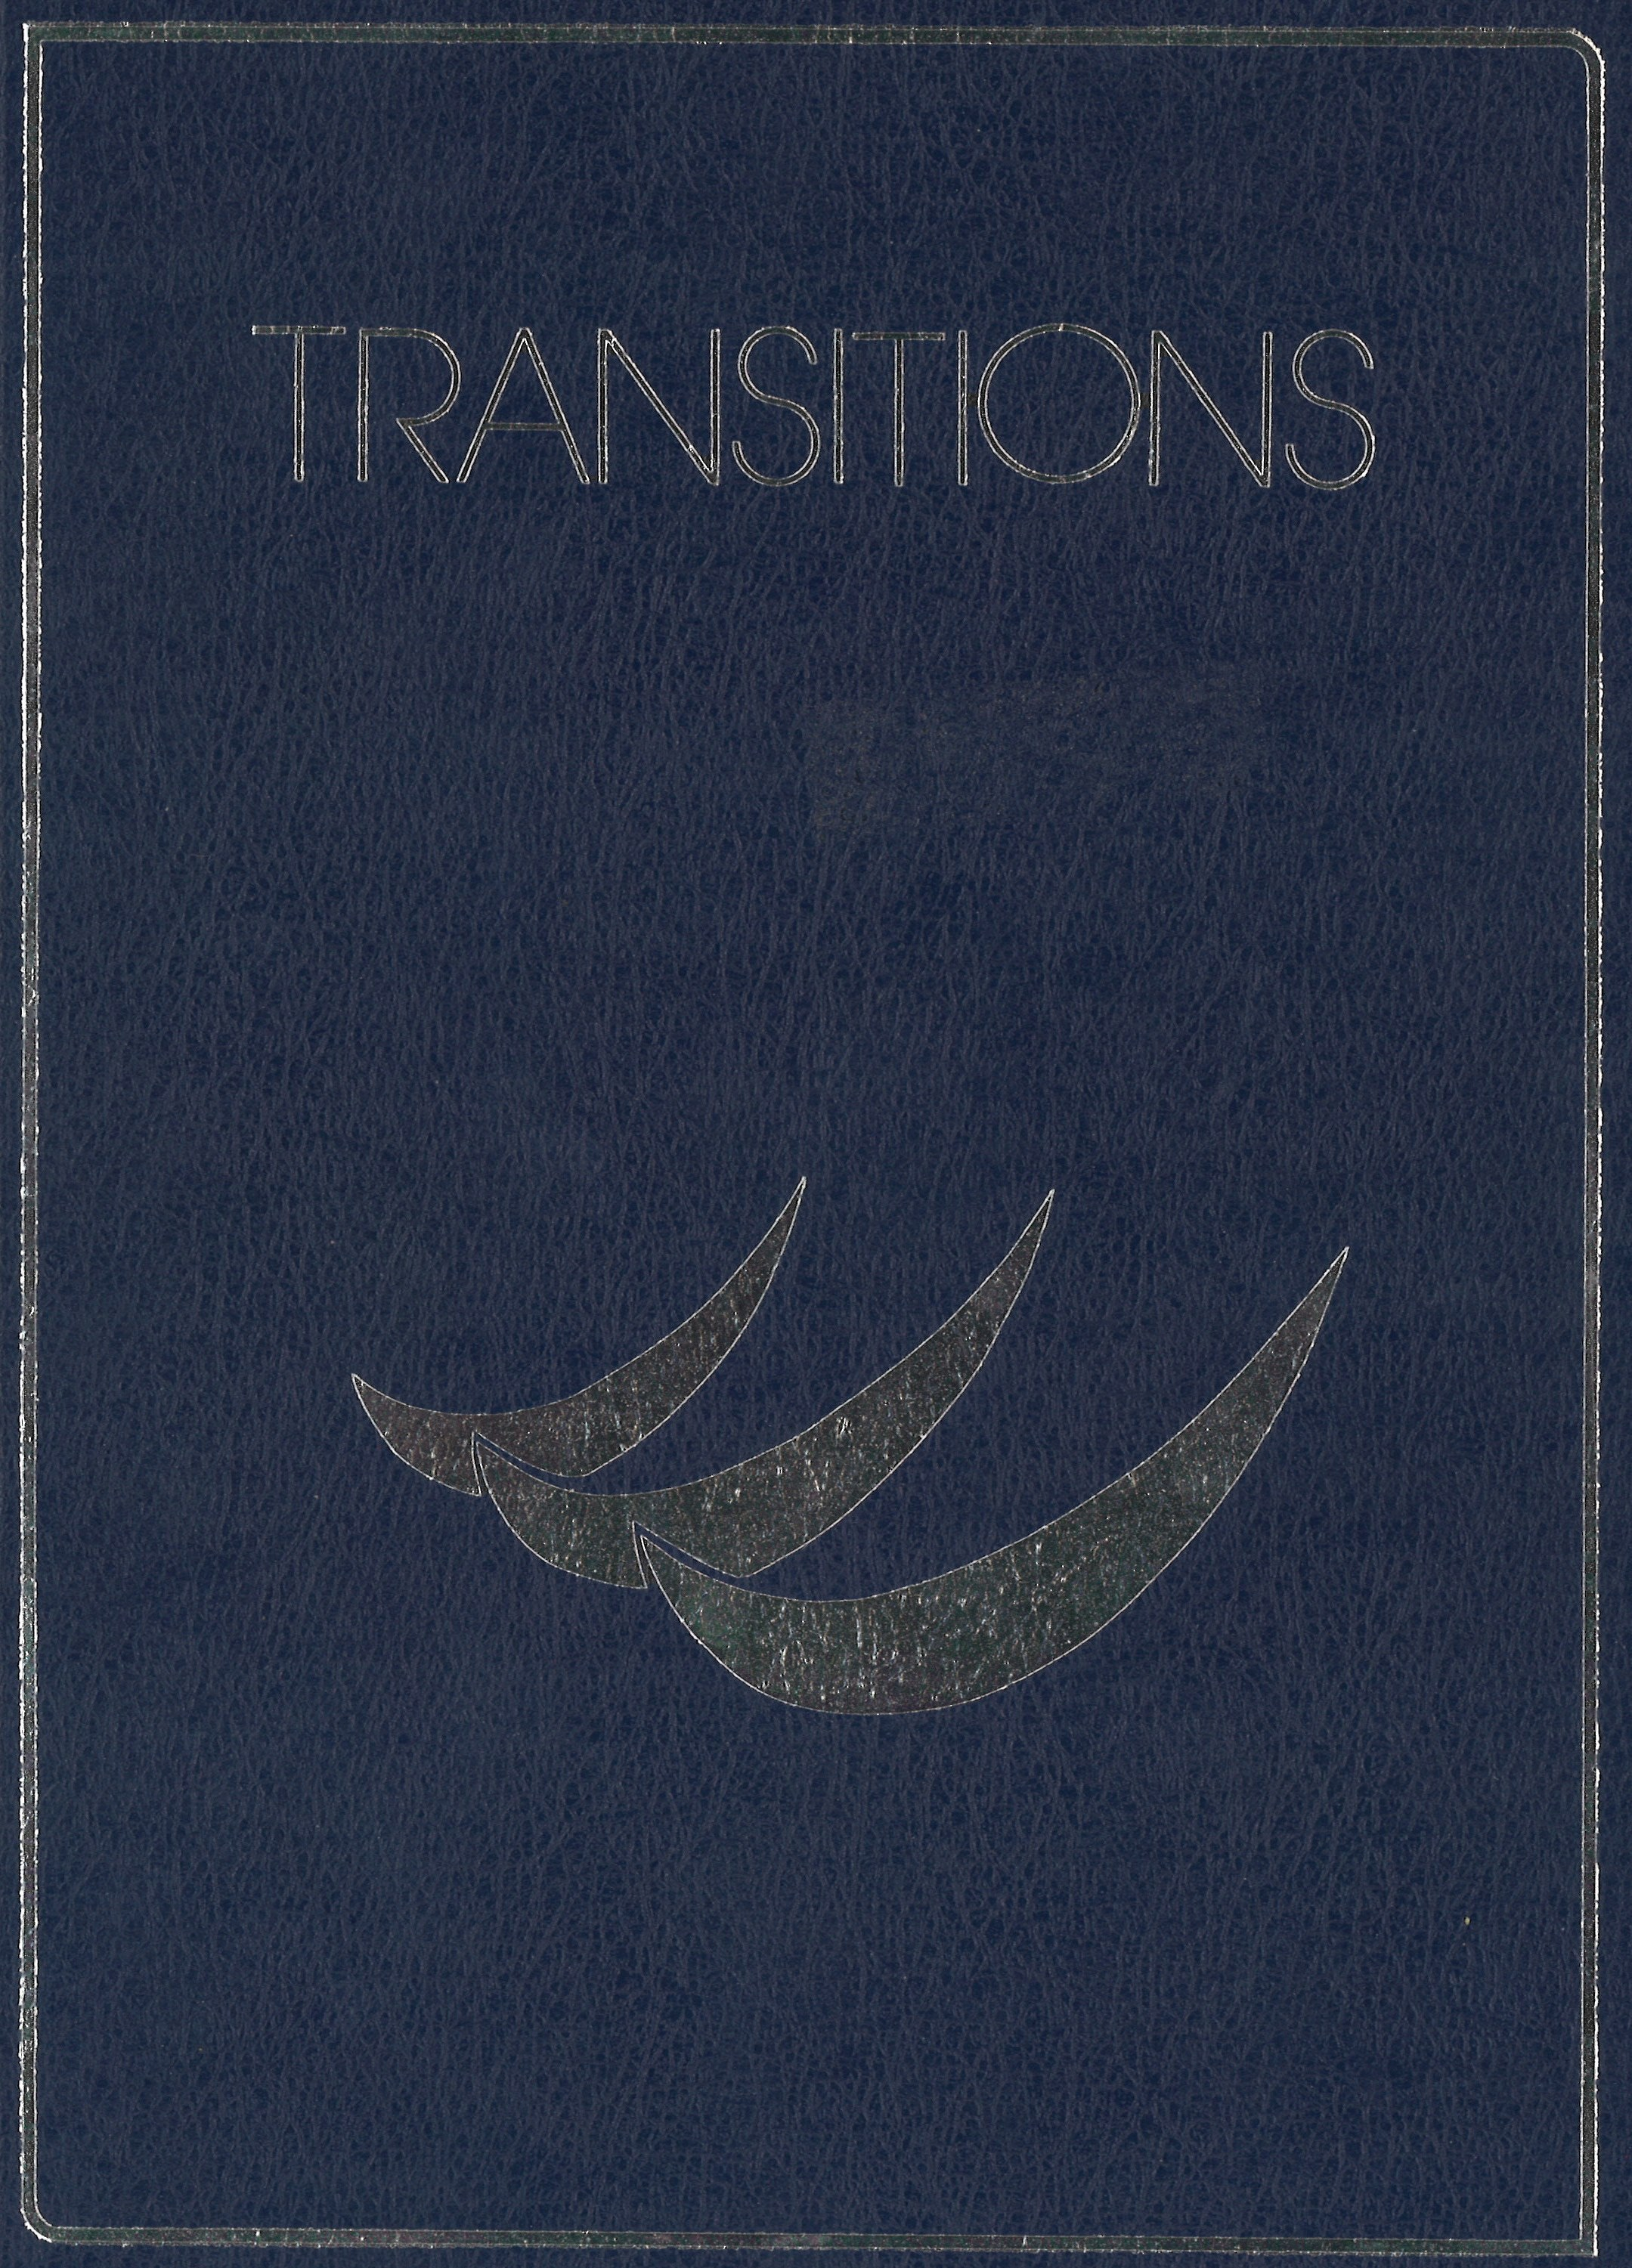 The 1987/1988 NBS yearbook,  Transitions.